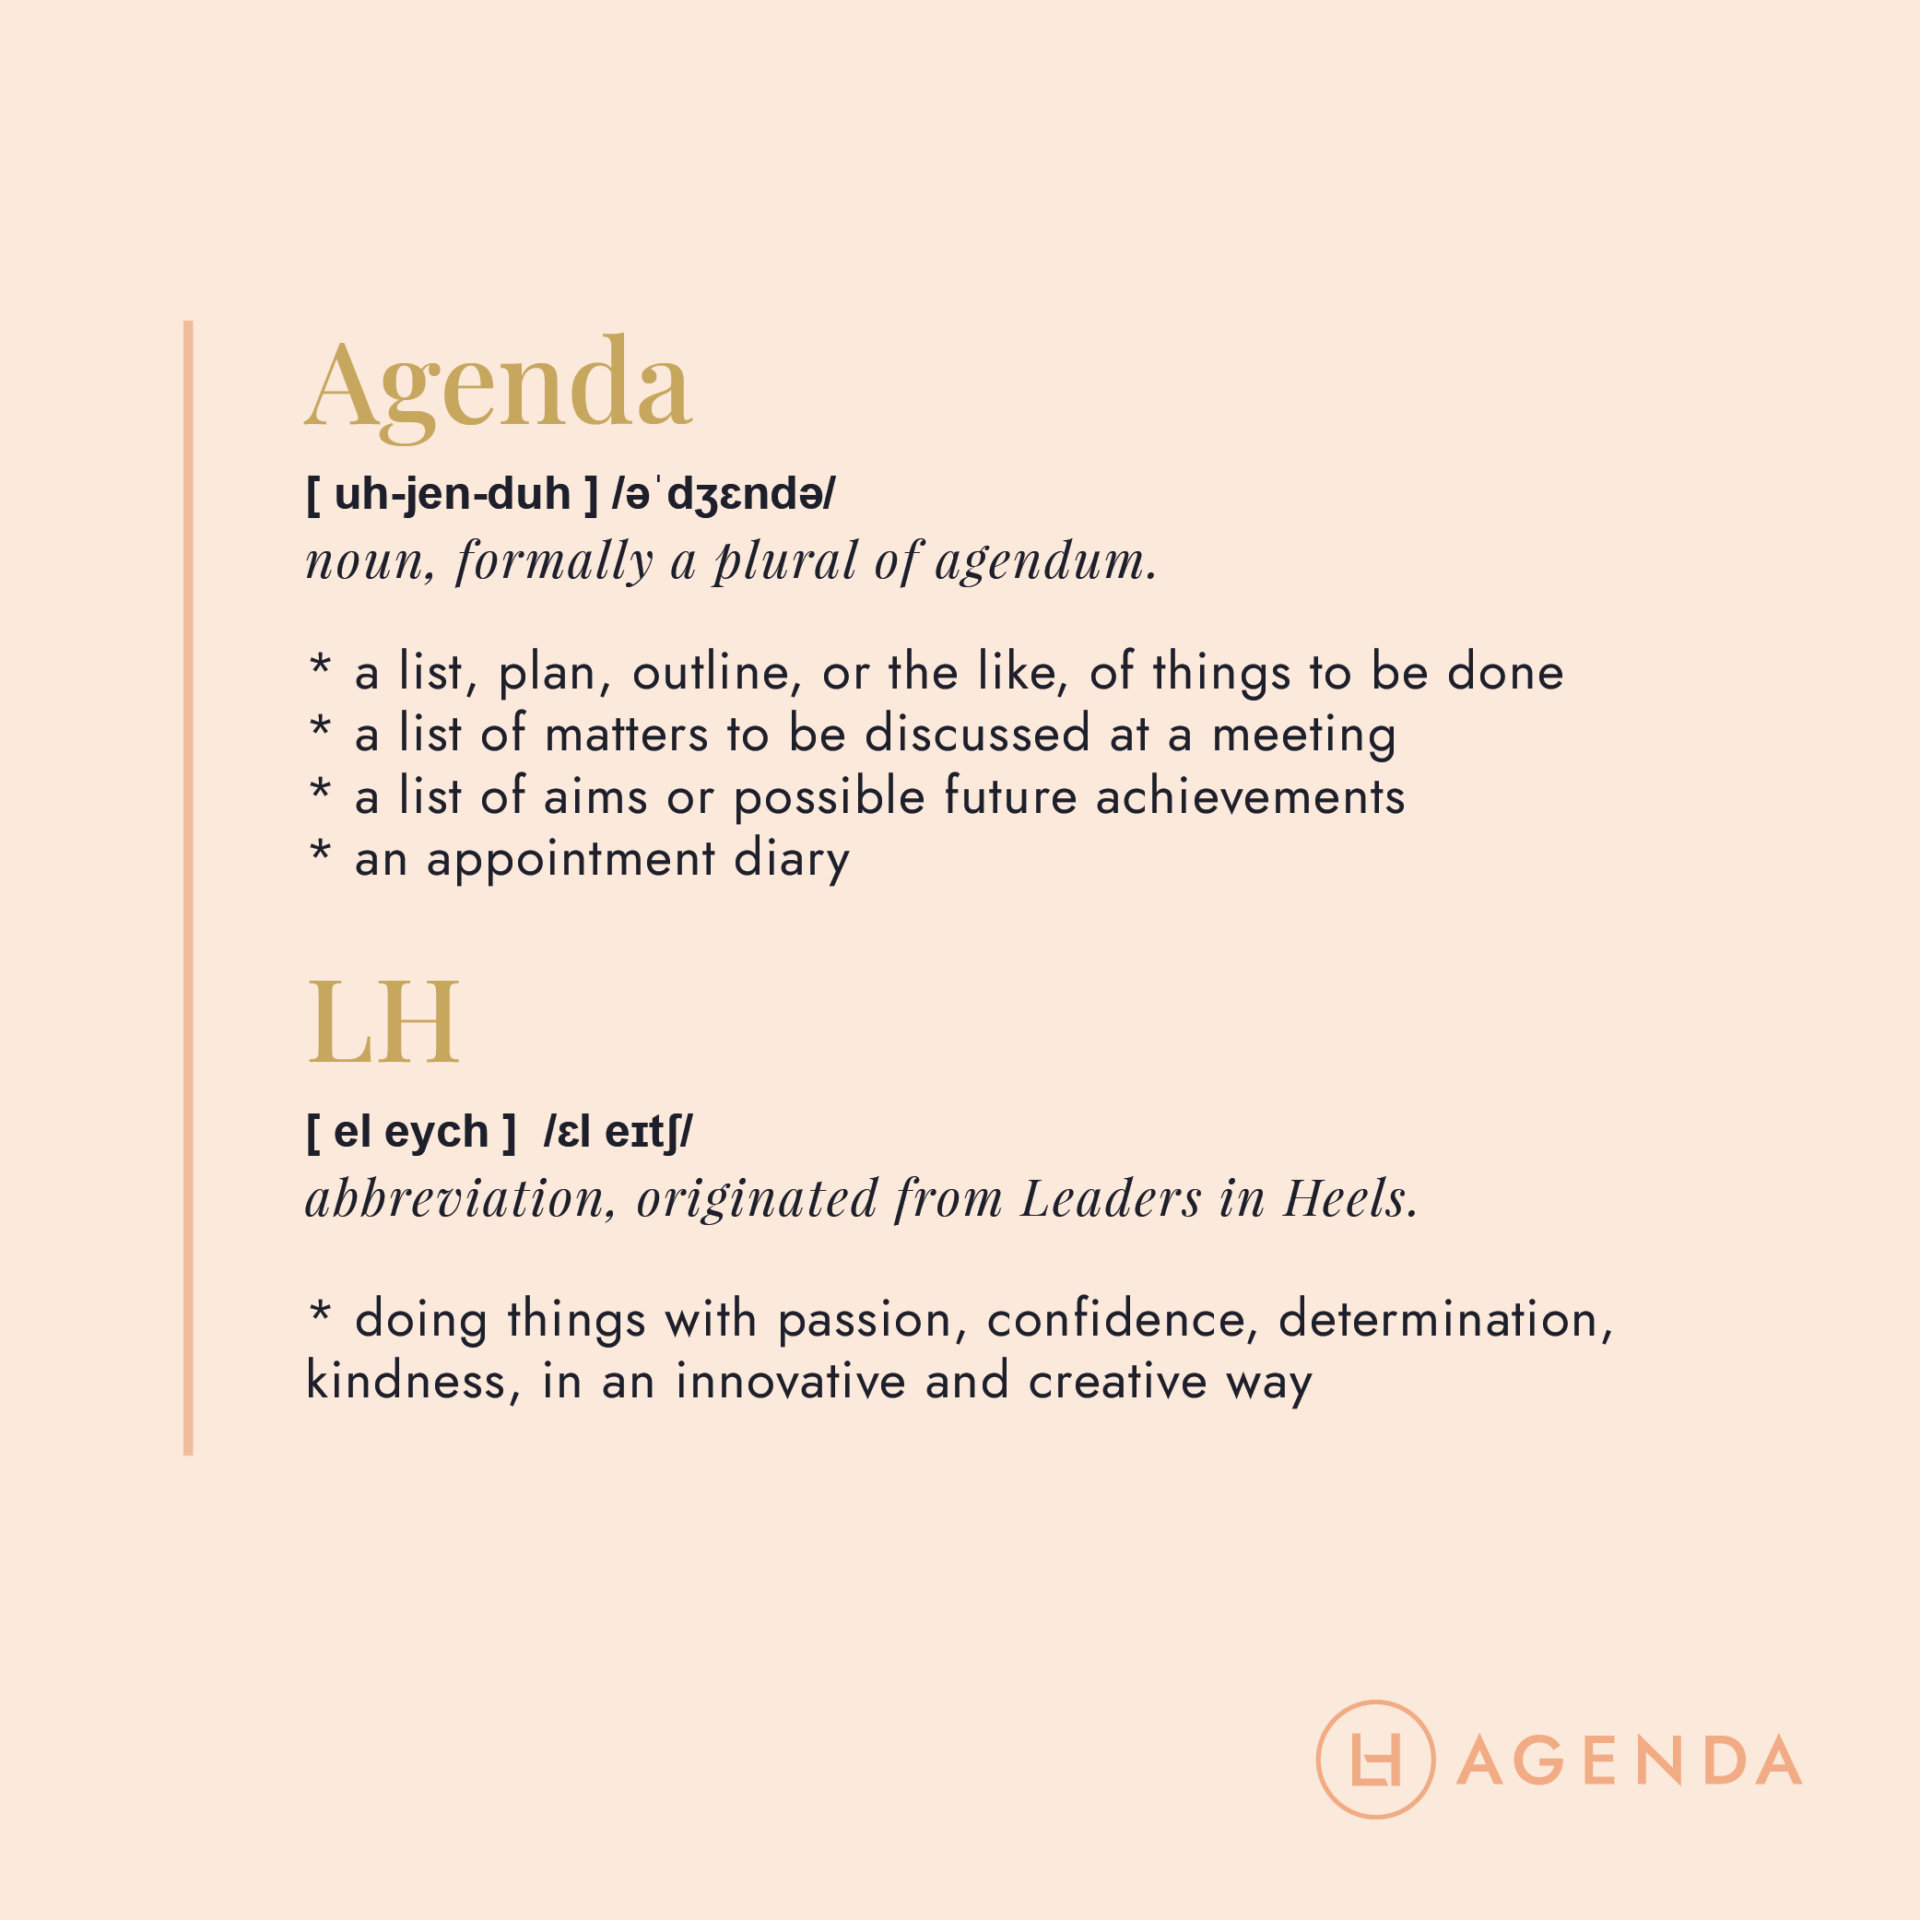 LH Agenda Meaning